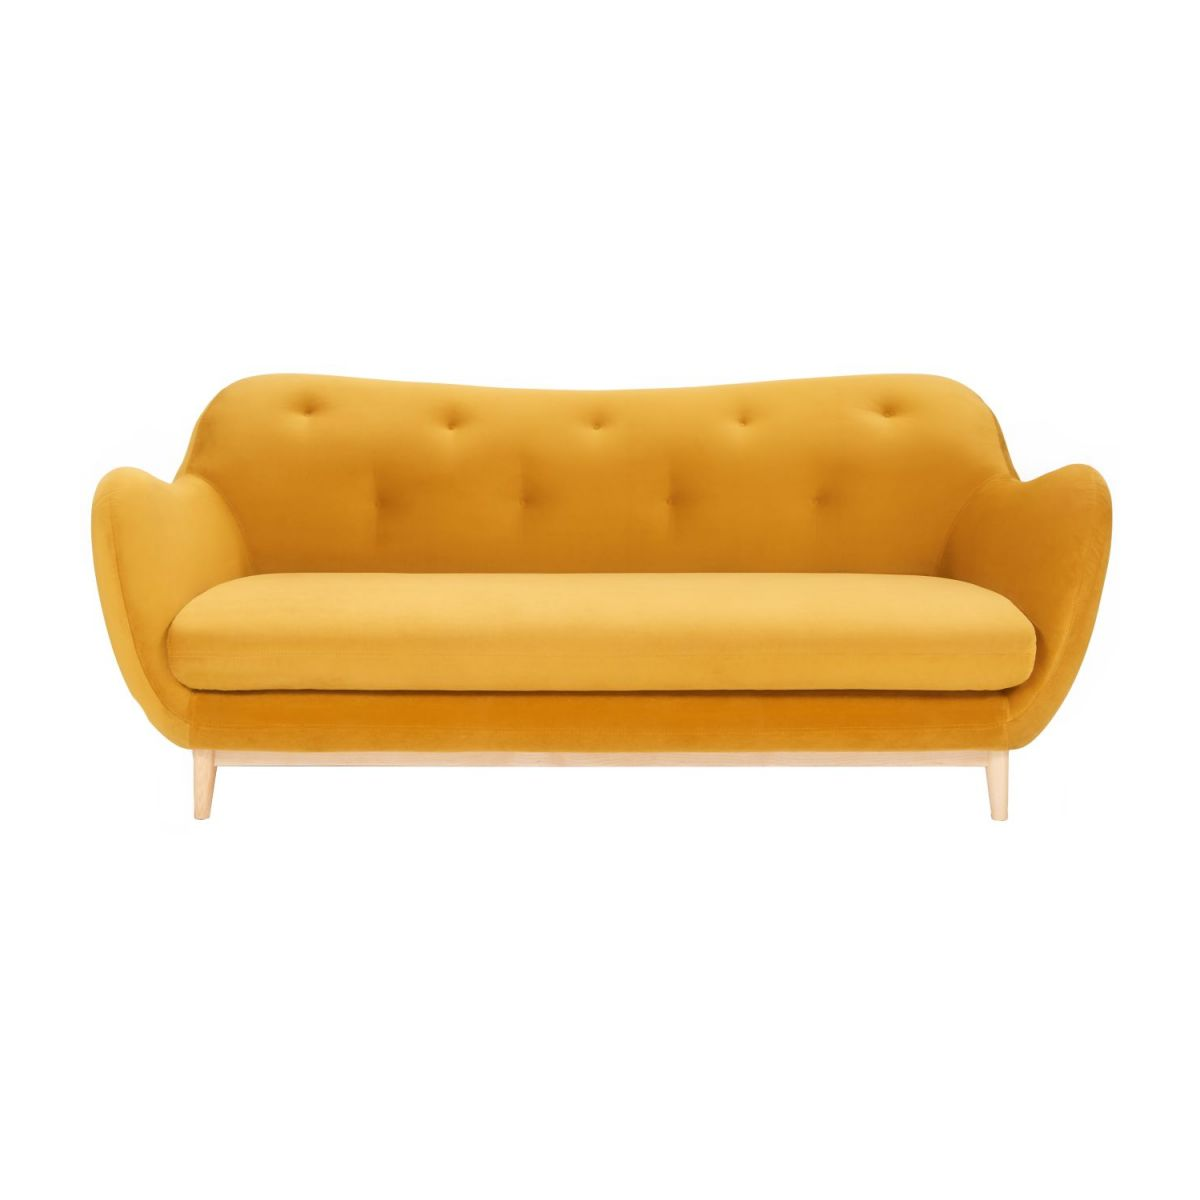 3-seat sofa made of velvet, mustard n°3